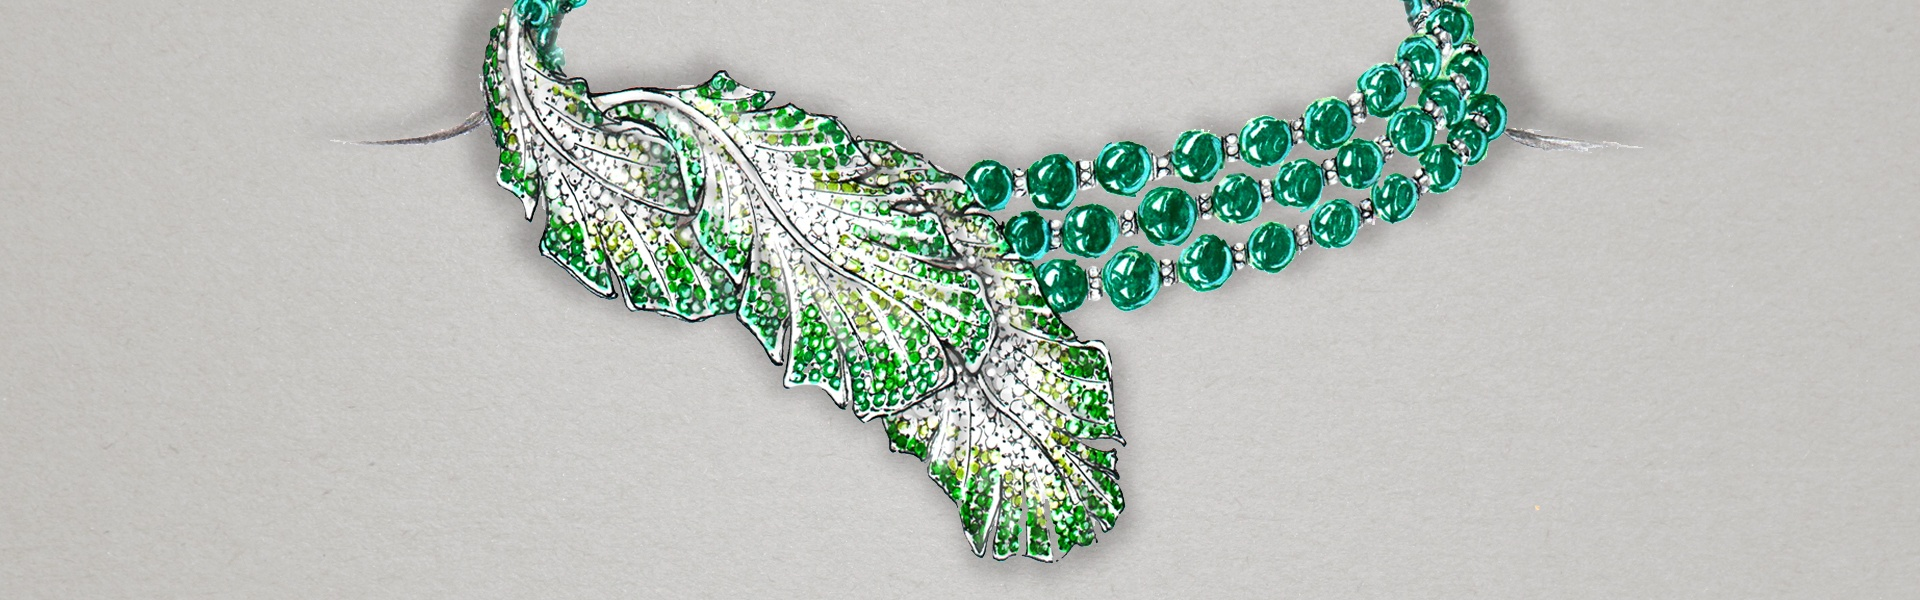 Fei Liu's bespoke Green Tourmaline Feather Neckpiece sketch.